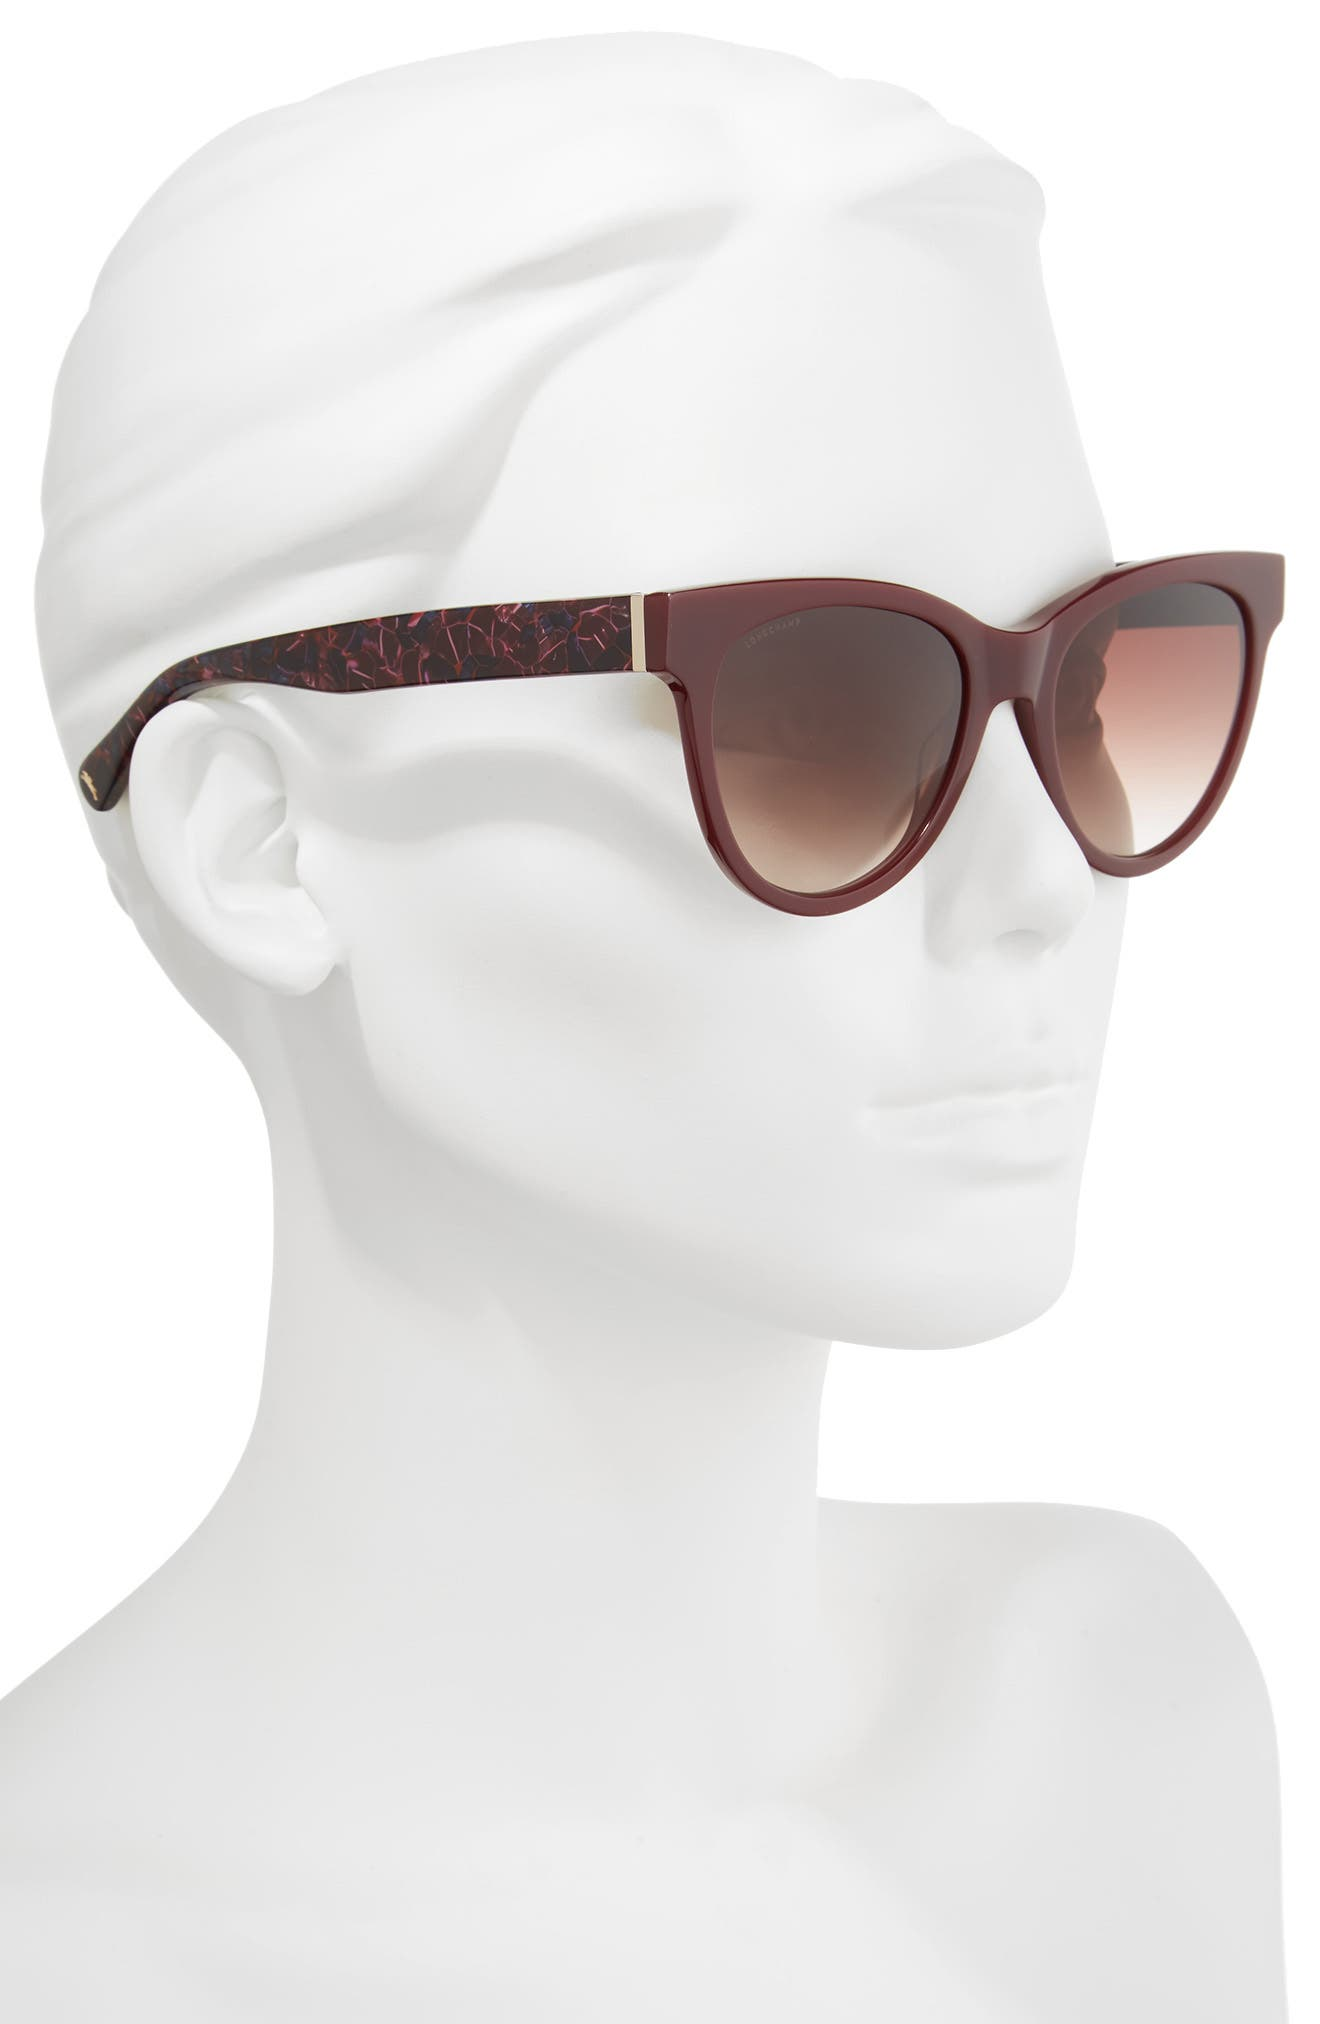 54mm Gradient Lens Cat Eye Sunglasses,                             Alternate thumbnail 2, color,                             WINE